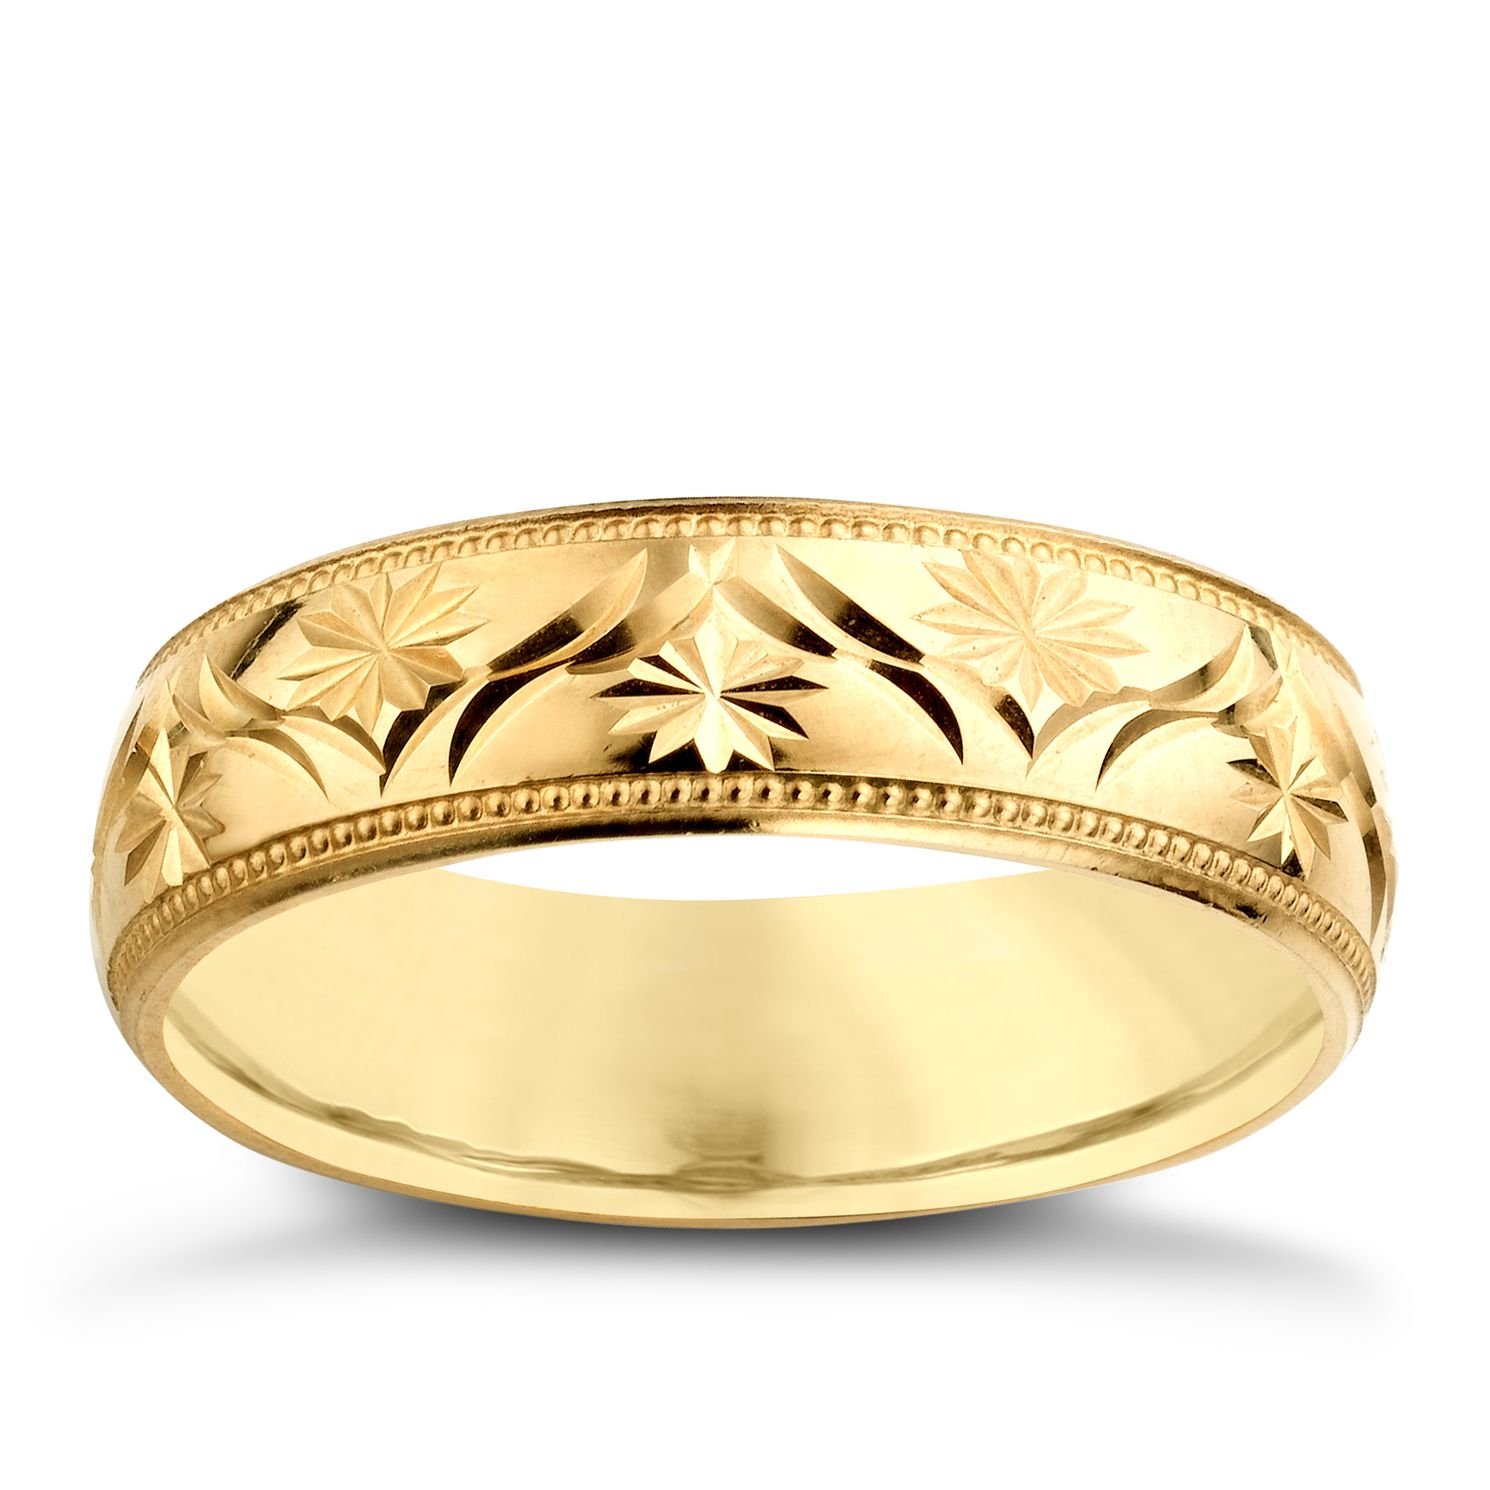 ring megastore eggn dubai golden and wedding jewellery rings r shop for